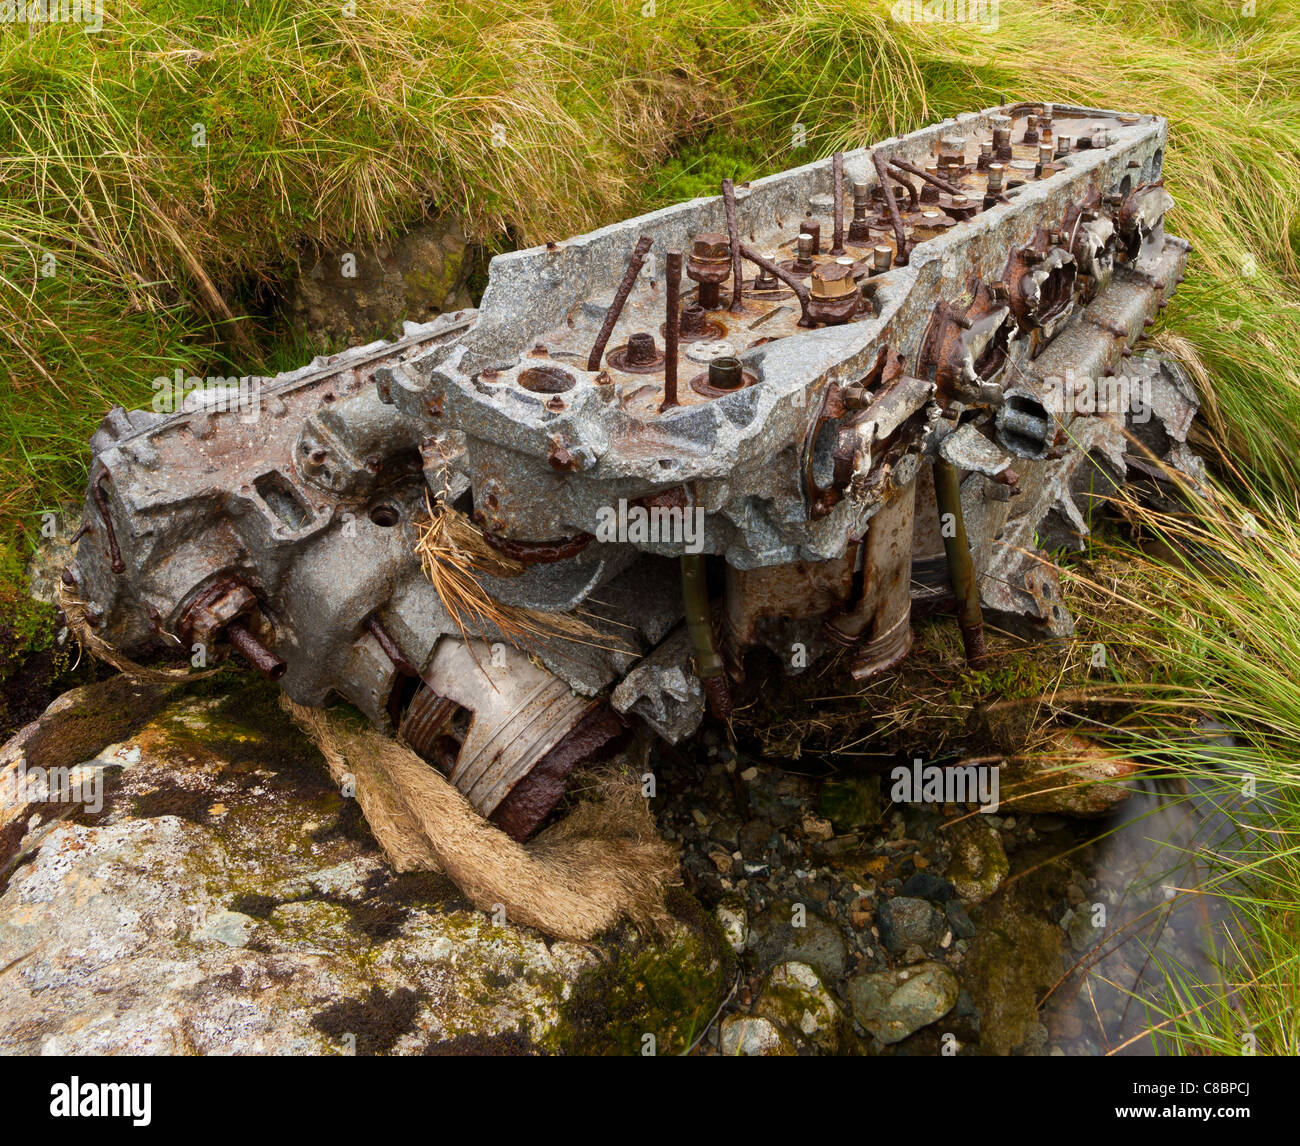 Wrecked Rolls Royce V12 Merlin engine from a Halifax bomber air crash site. - Stock Image